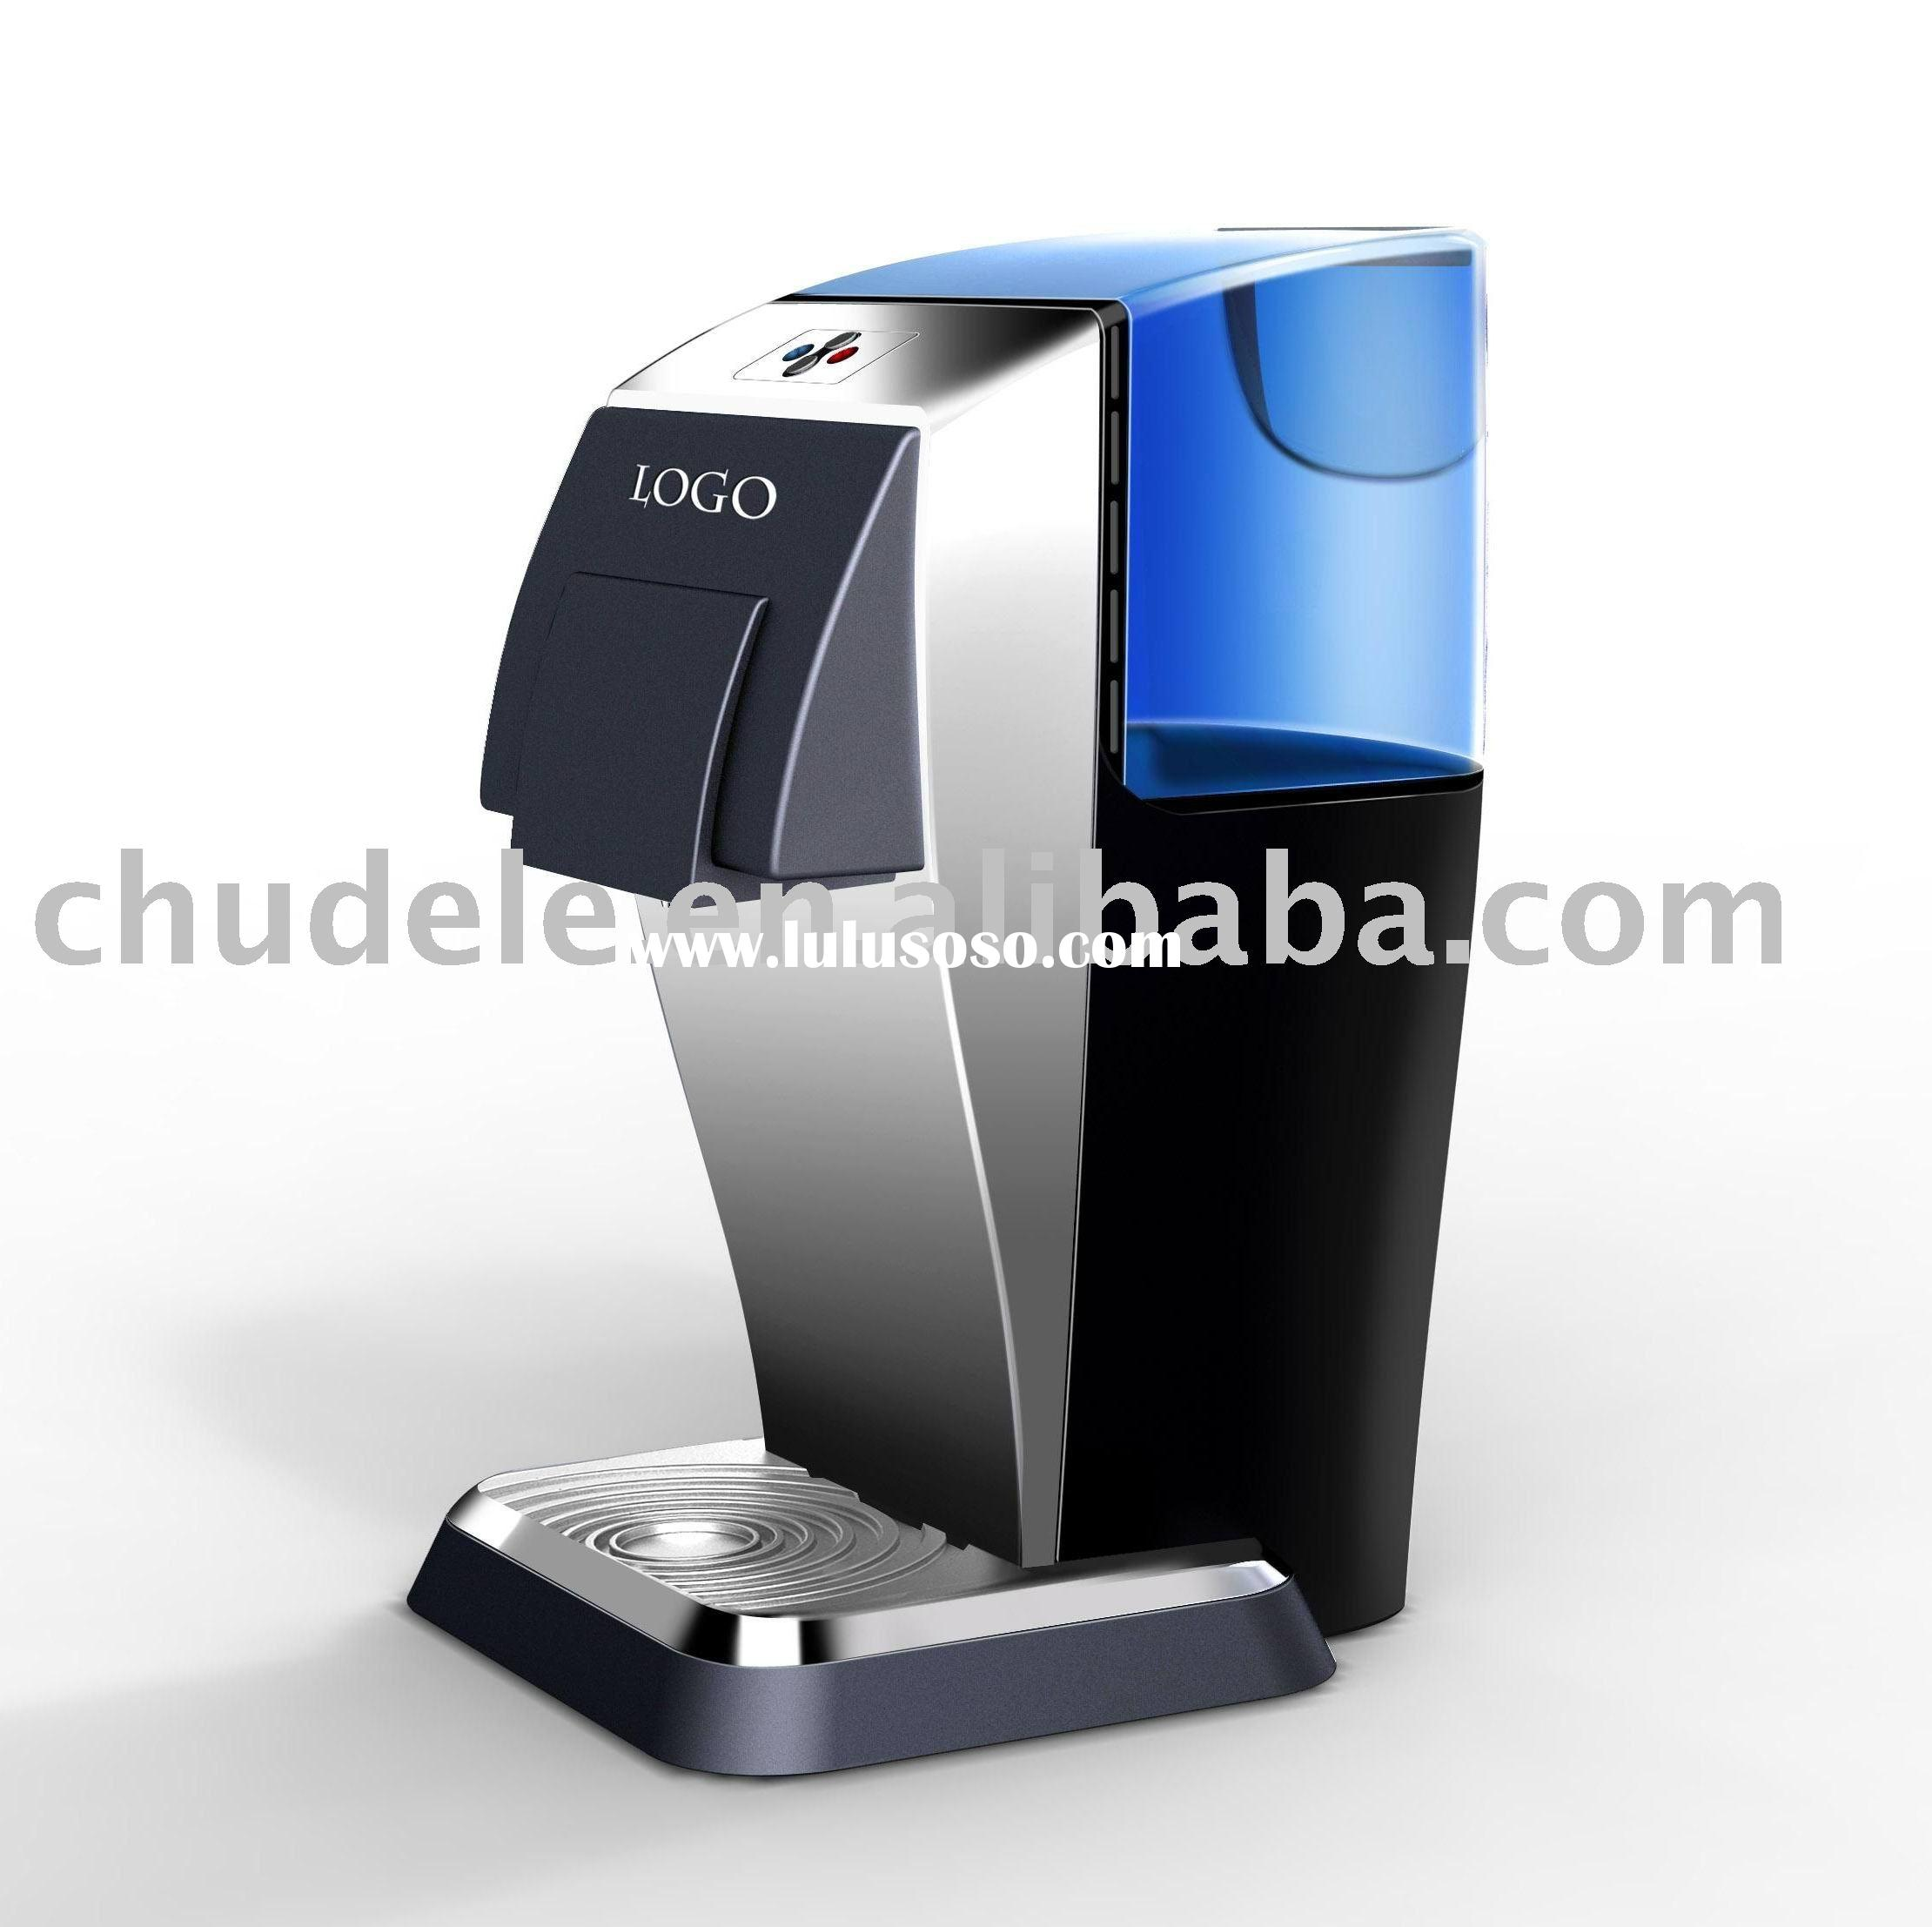 Rapid hot water dispenser / water kettle / electric kettle